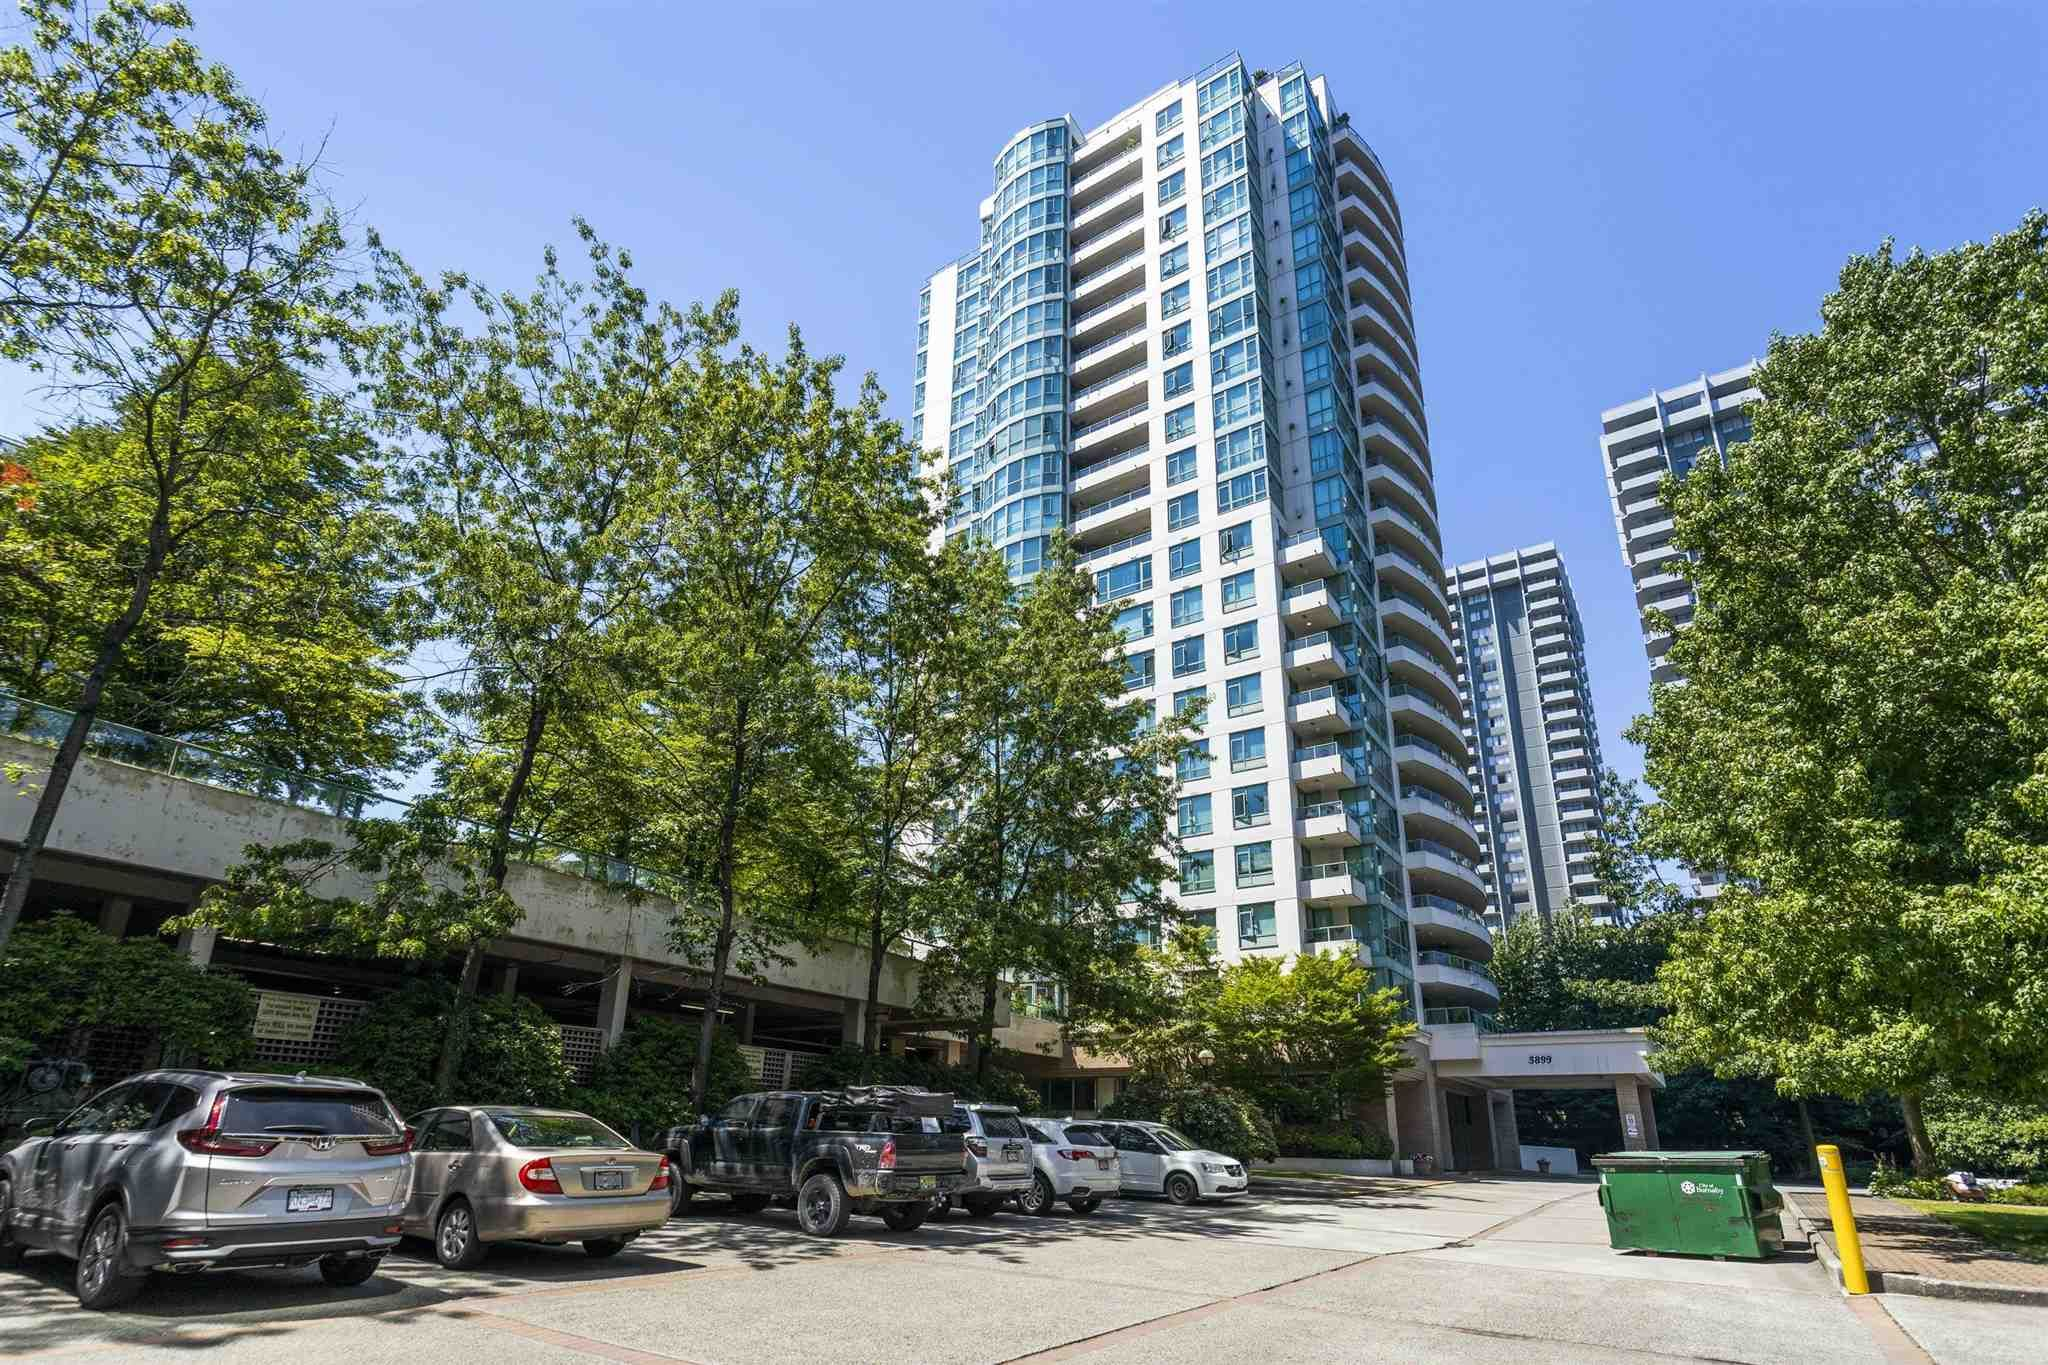 """Main Photo: 802 5899 WILSON Avenue in Burnaby: Central Park BS Condo for sale in """"PARAMOUNT 2"""" (Burnaby South)  : MLS®# R2600399"""